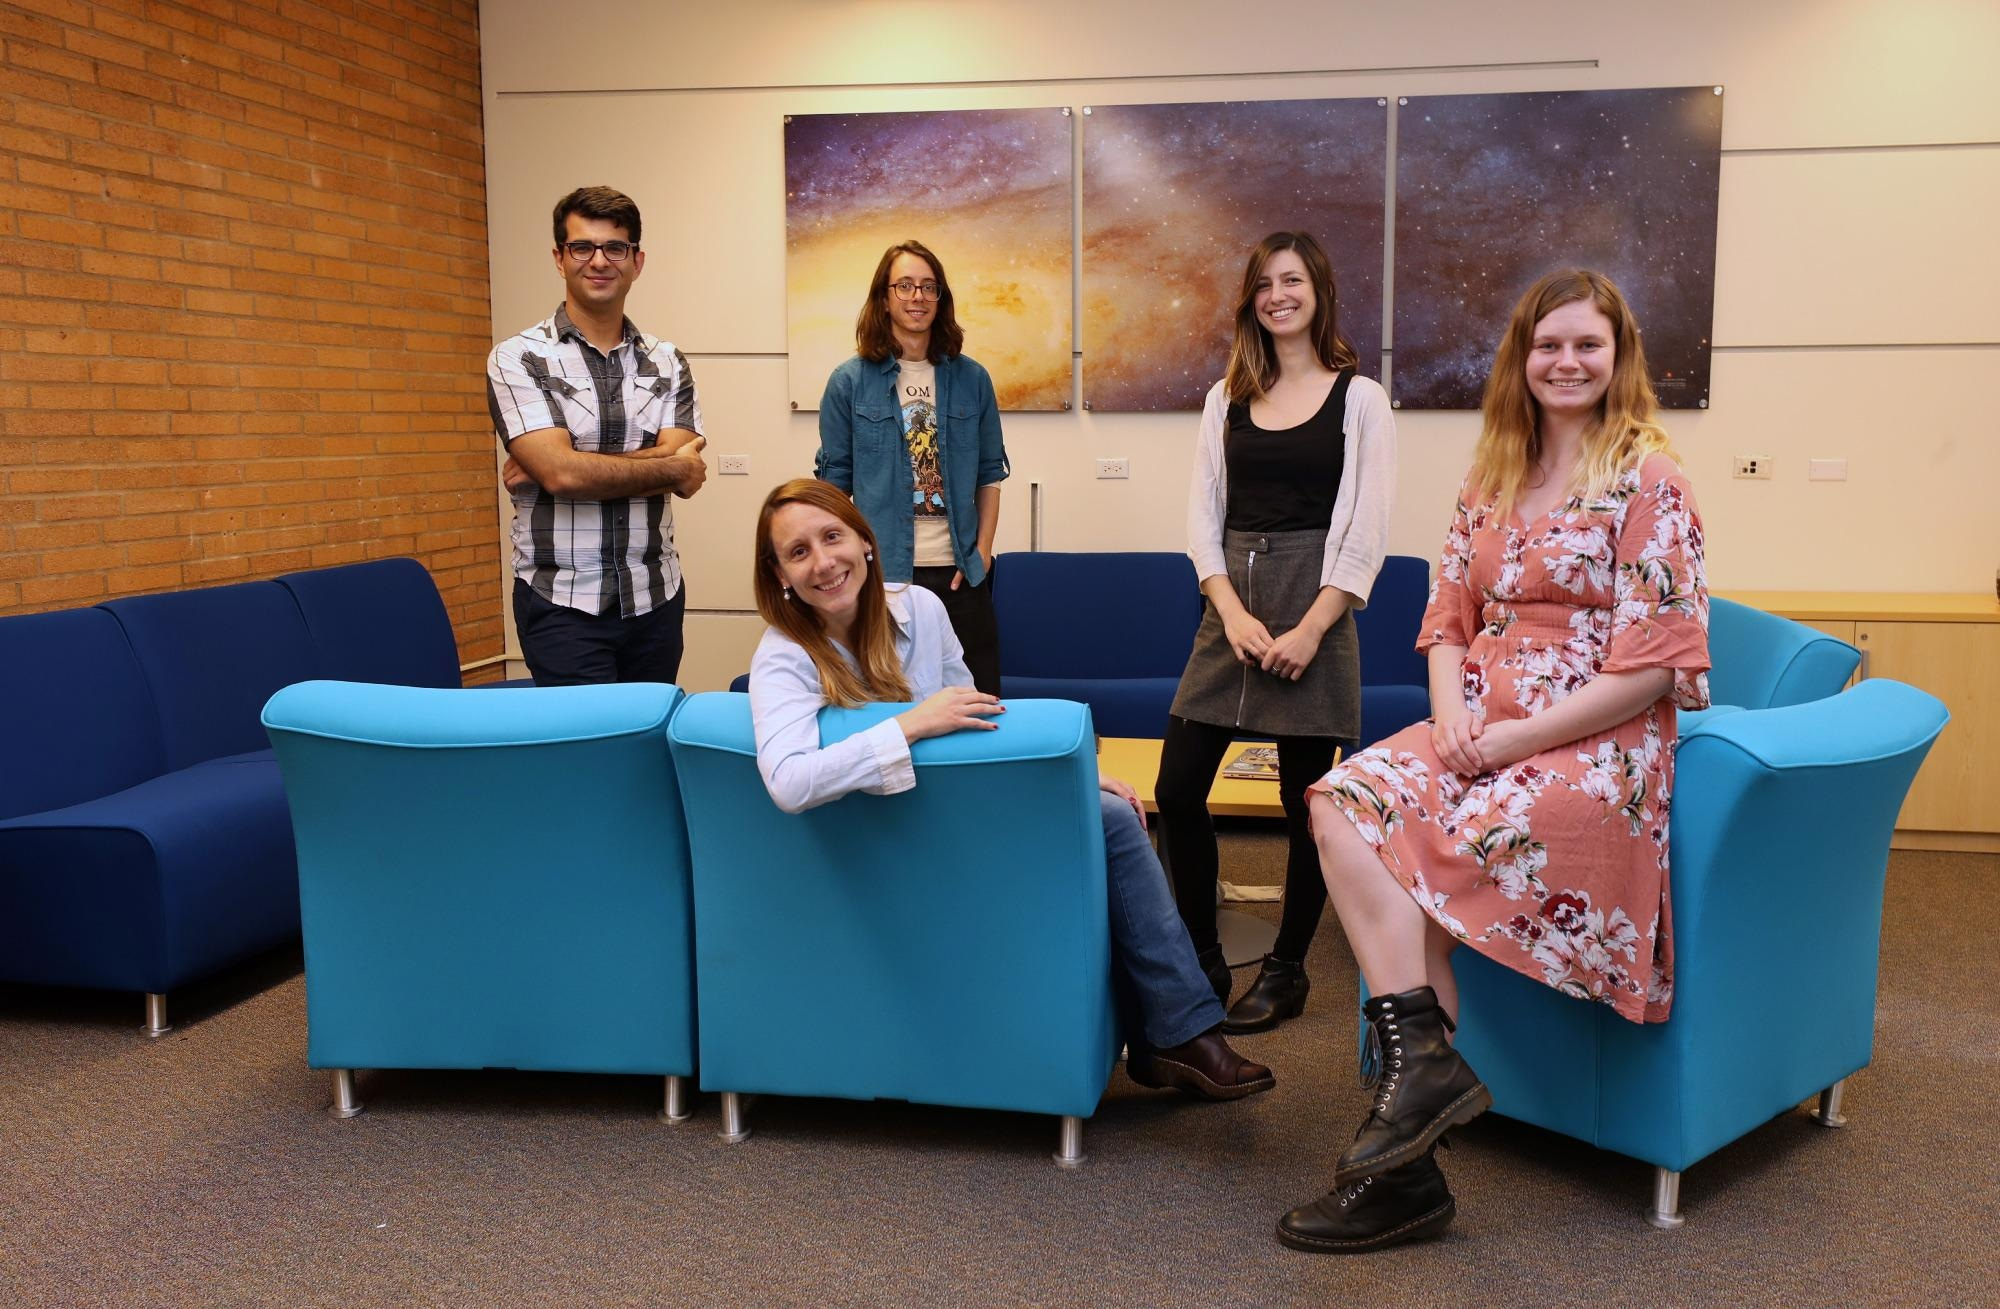 Laura Sales (seated, left) with her research group of former and current students, including Jessica Doppel (seated, right).